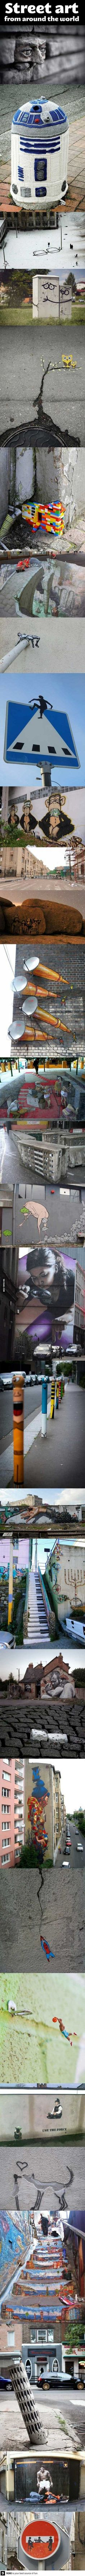 Some awesome street art